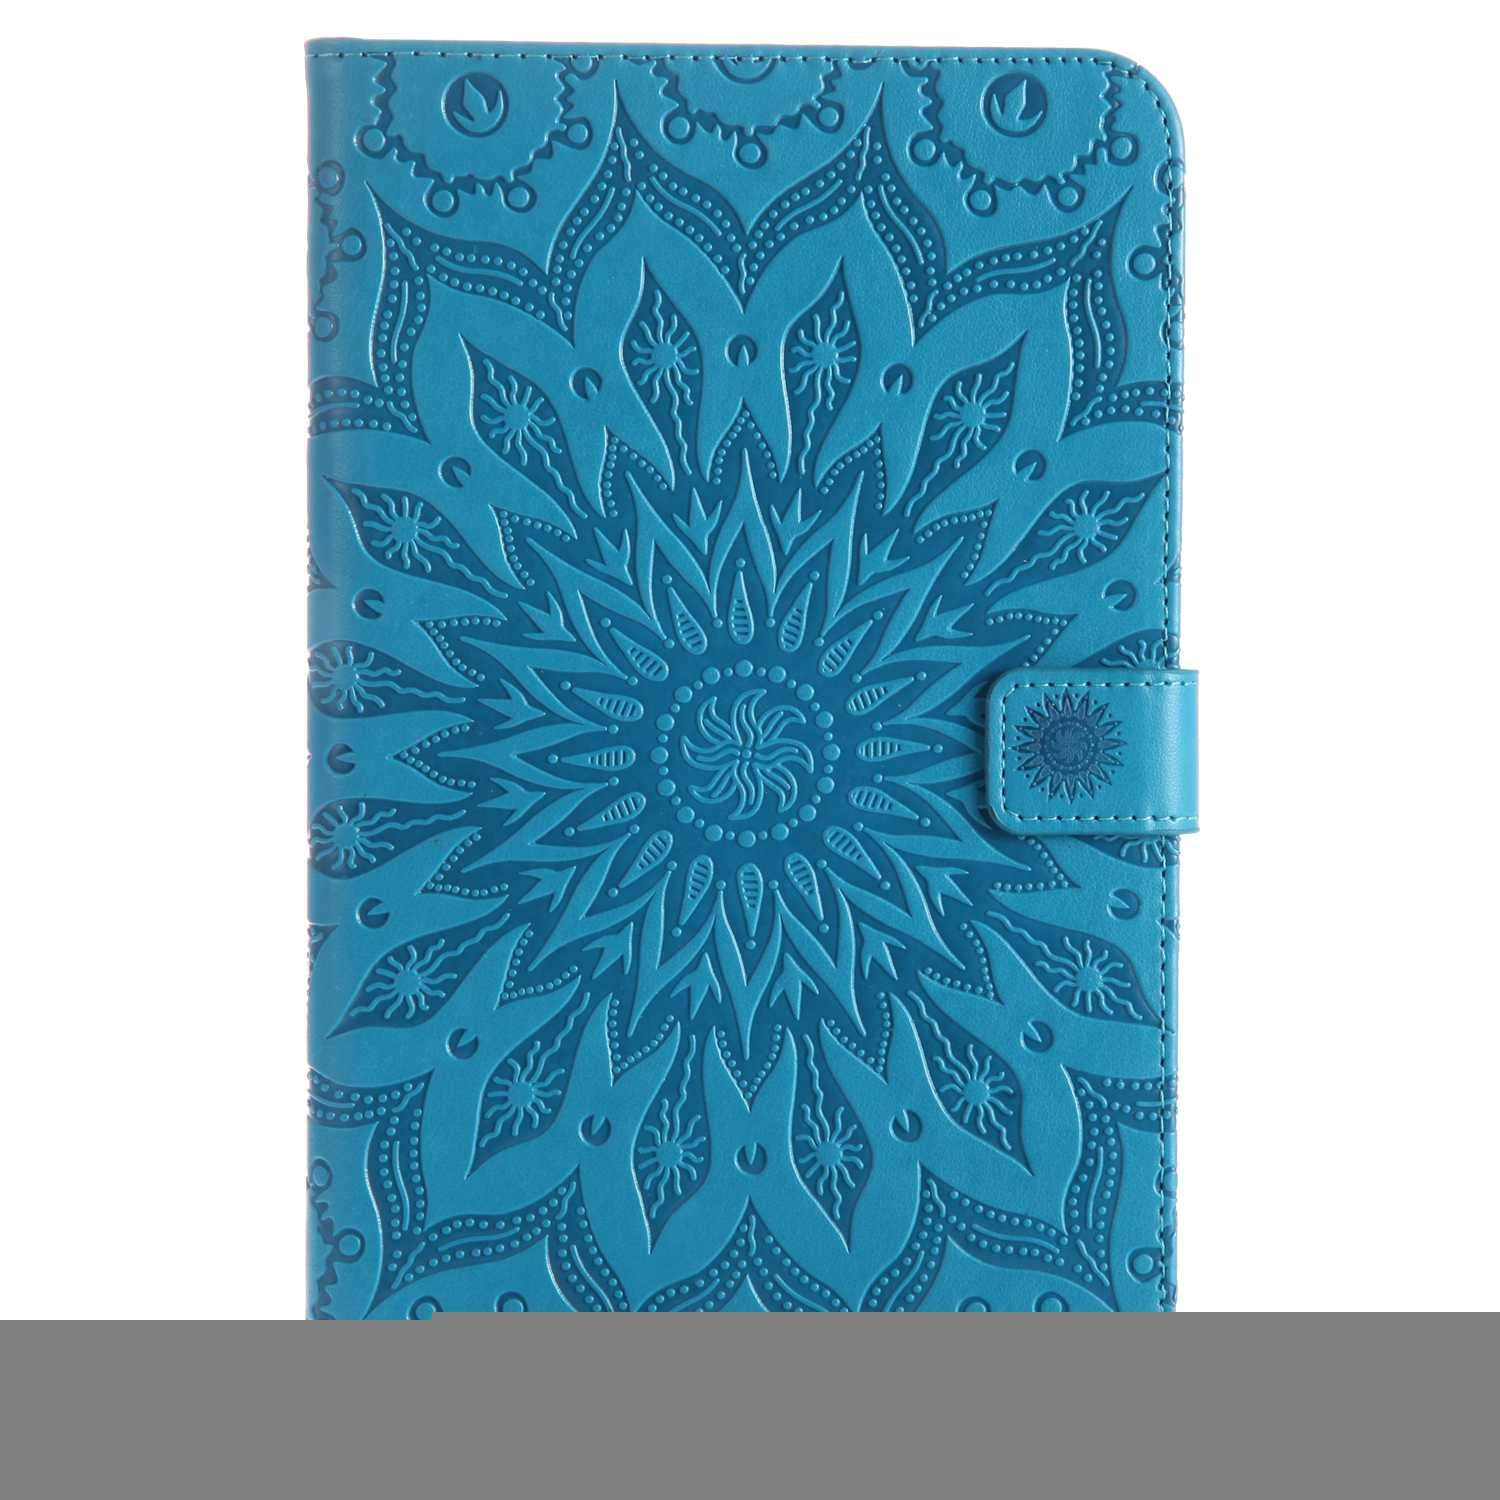 Bear Village Galaxy Tab a 2017 8.0 Inch Case, Anti Scratch Shell with Adjust Stand, Full Body Protective Cover for Samsung Galaxy Tab a 2017 8.0 Inch, Blue by Bear Village